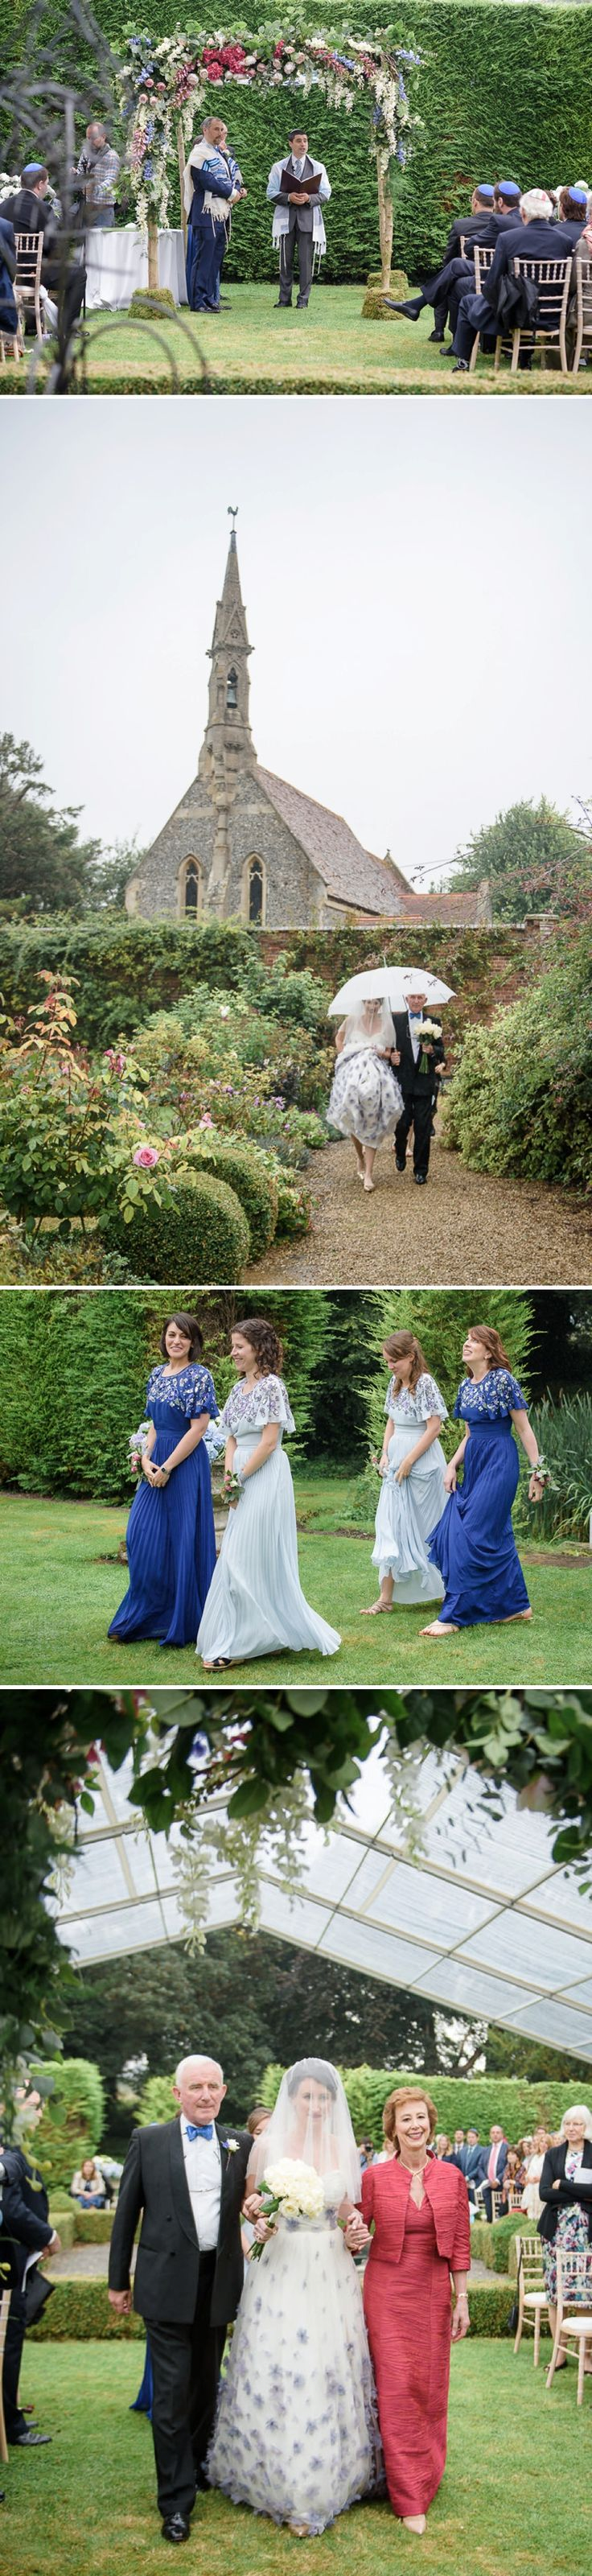 outdoor wedding ceremony sites in akron ohio%0A A Stephanie Allin bride in a blue and white wedding dress for an English  country garden Jewish wedding at Adwell House  Oxfordshire  Smashing the  Glass